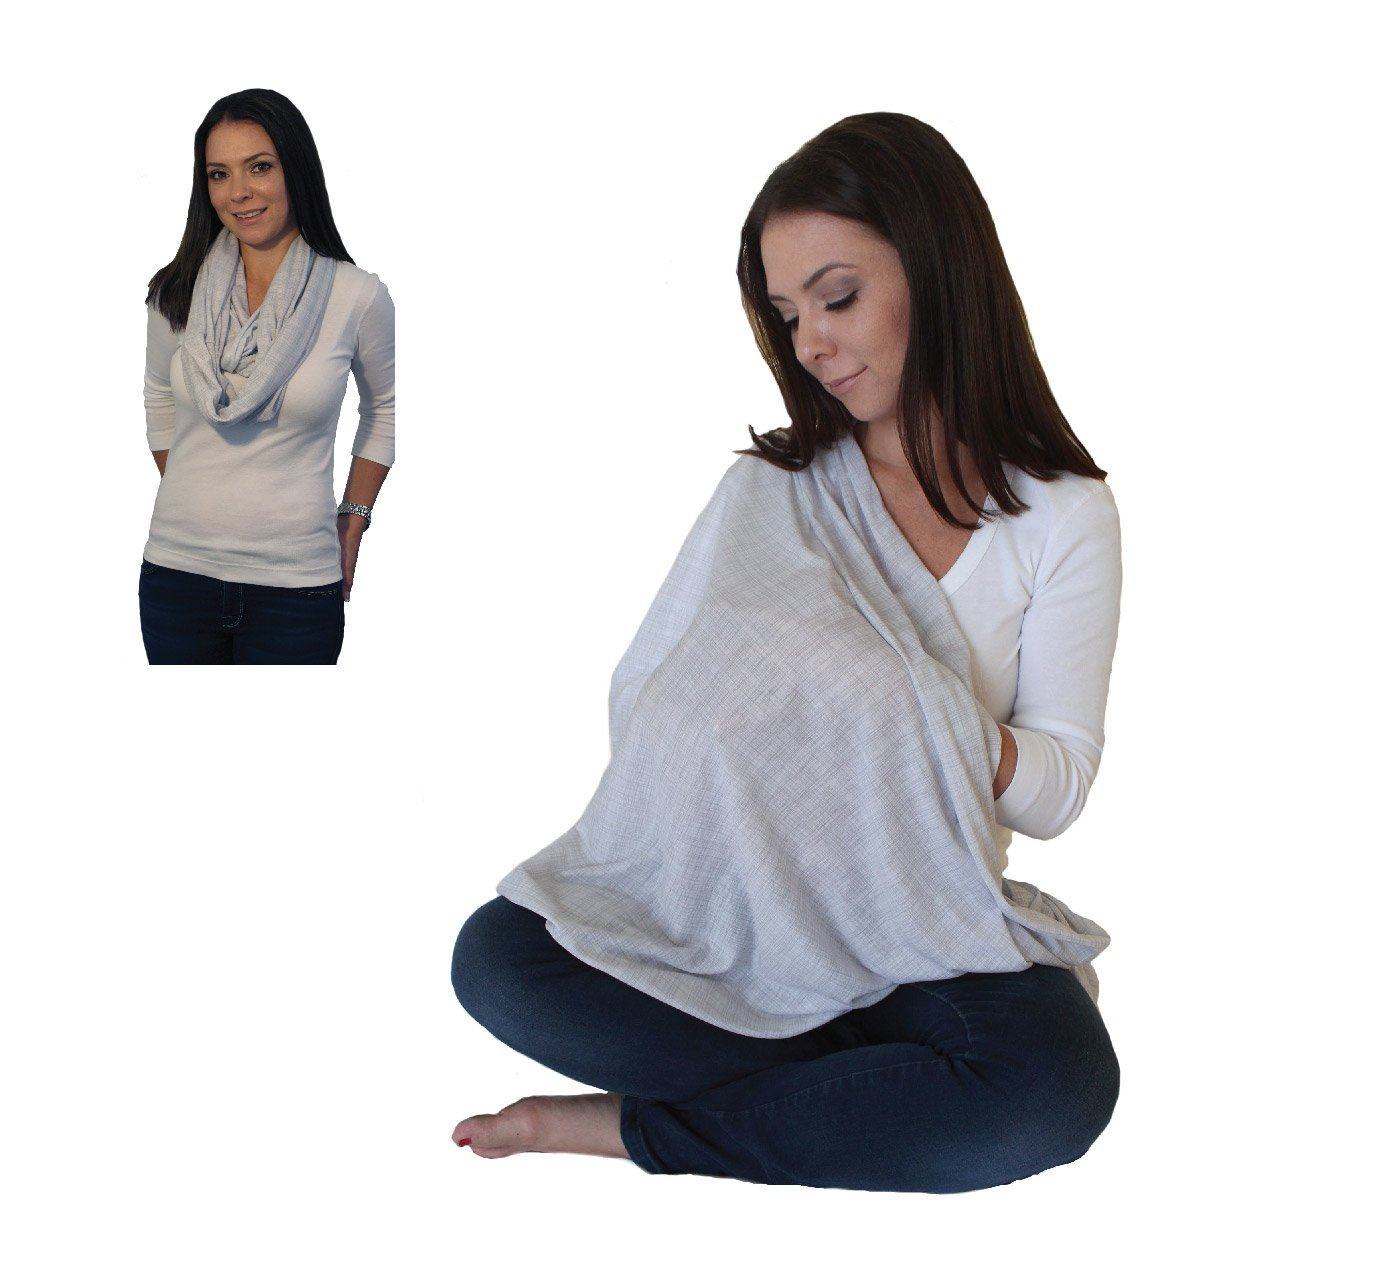 Exceptional Amazon.com : Infinity Nursing Scarf Breastfeeding Cover Ultra Soft Premium  Jersey Polyester  100% AZO Free And Safe For Baby (Light Grey Pattern) :  Baby Throughout Nursing Cover